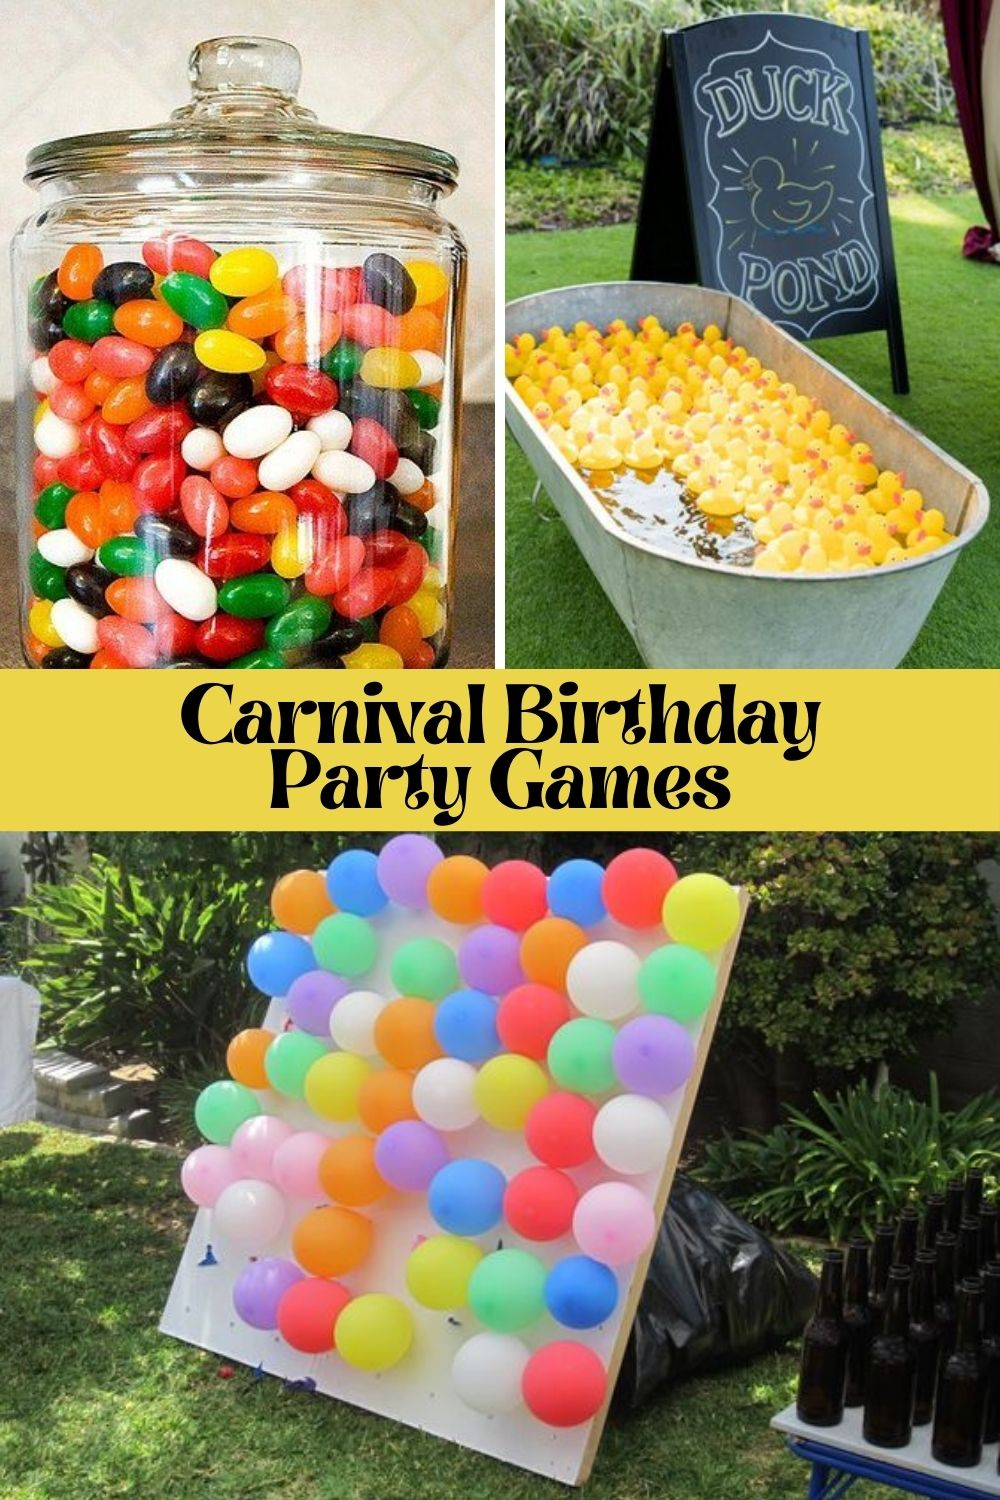 Outdoor Carnival Birthday Party Games